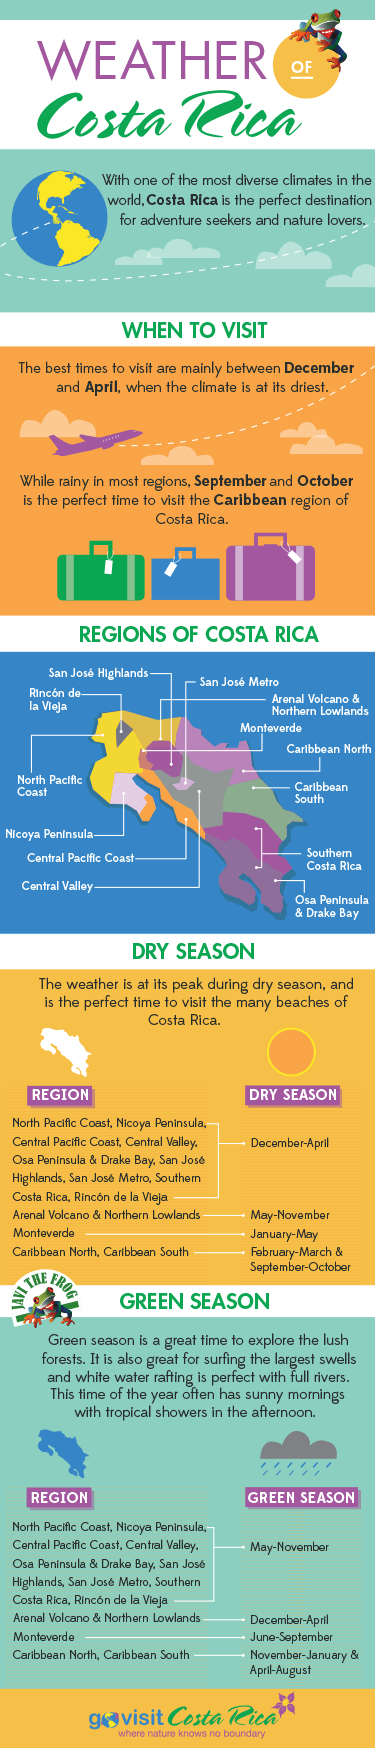 Costa Rica Weather has two distinct seasons: High & Green Season